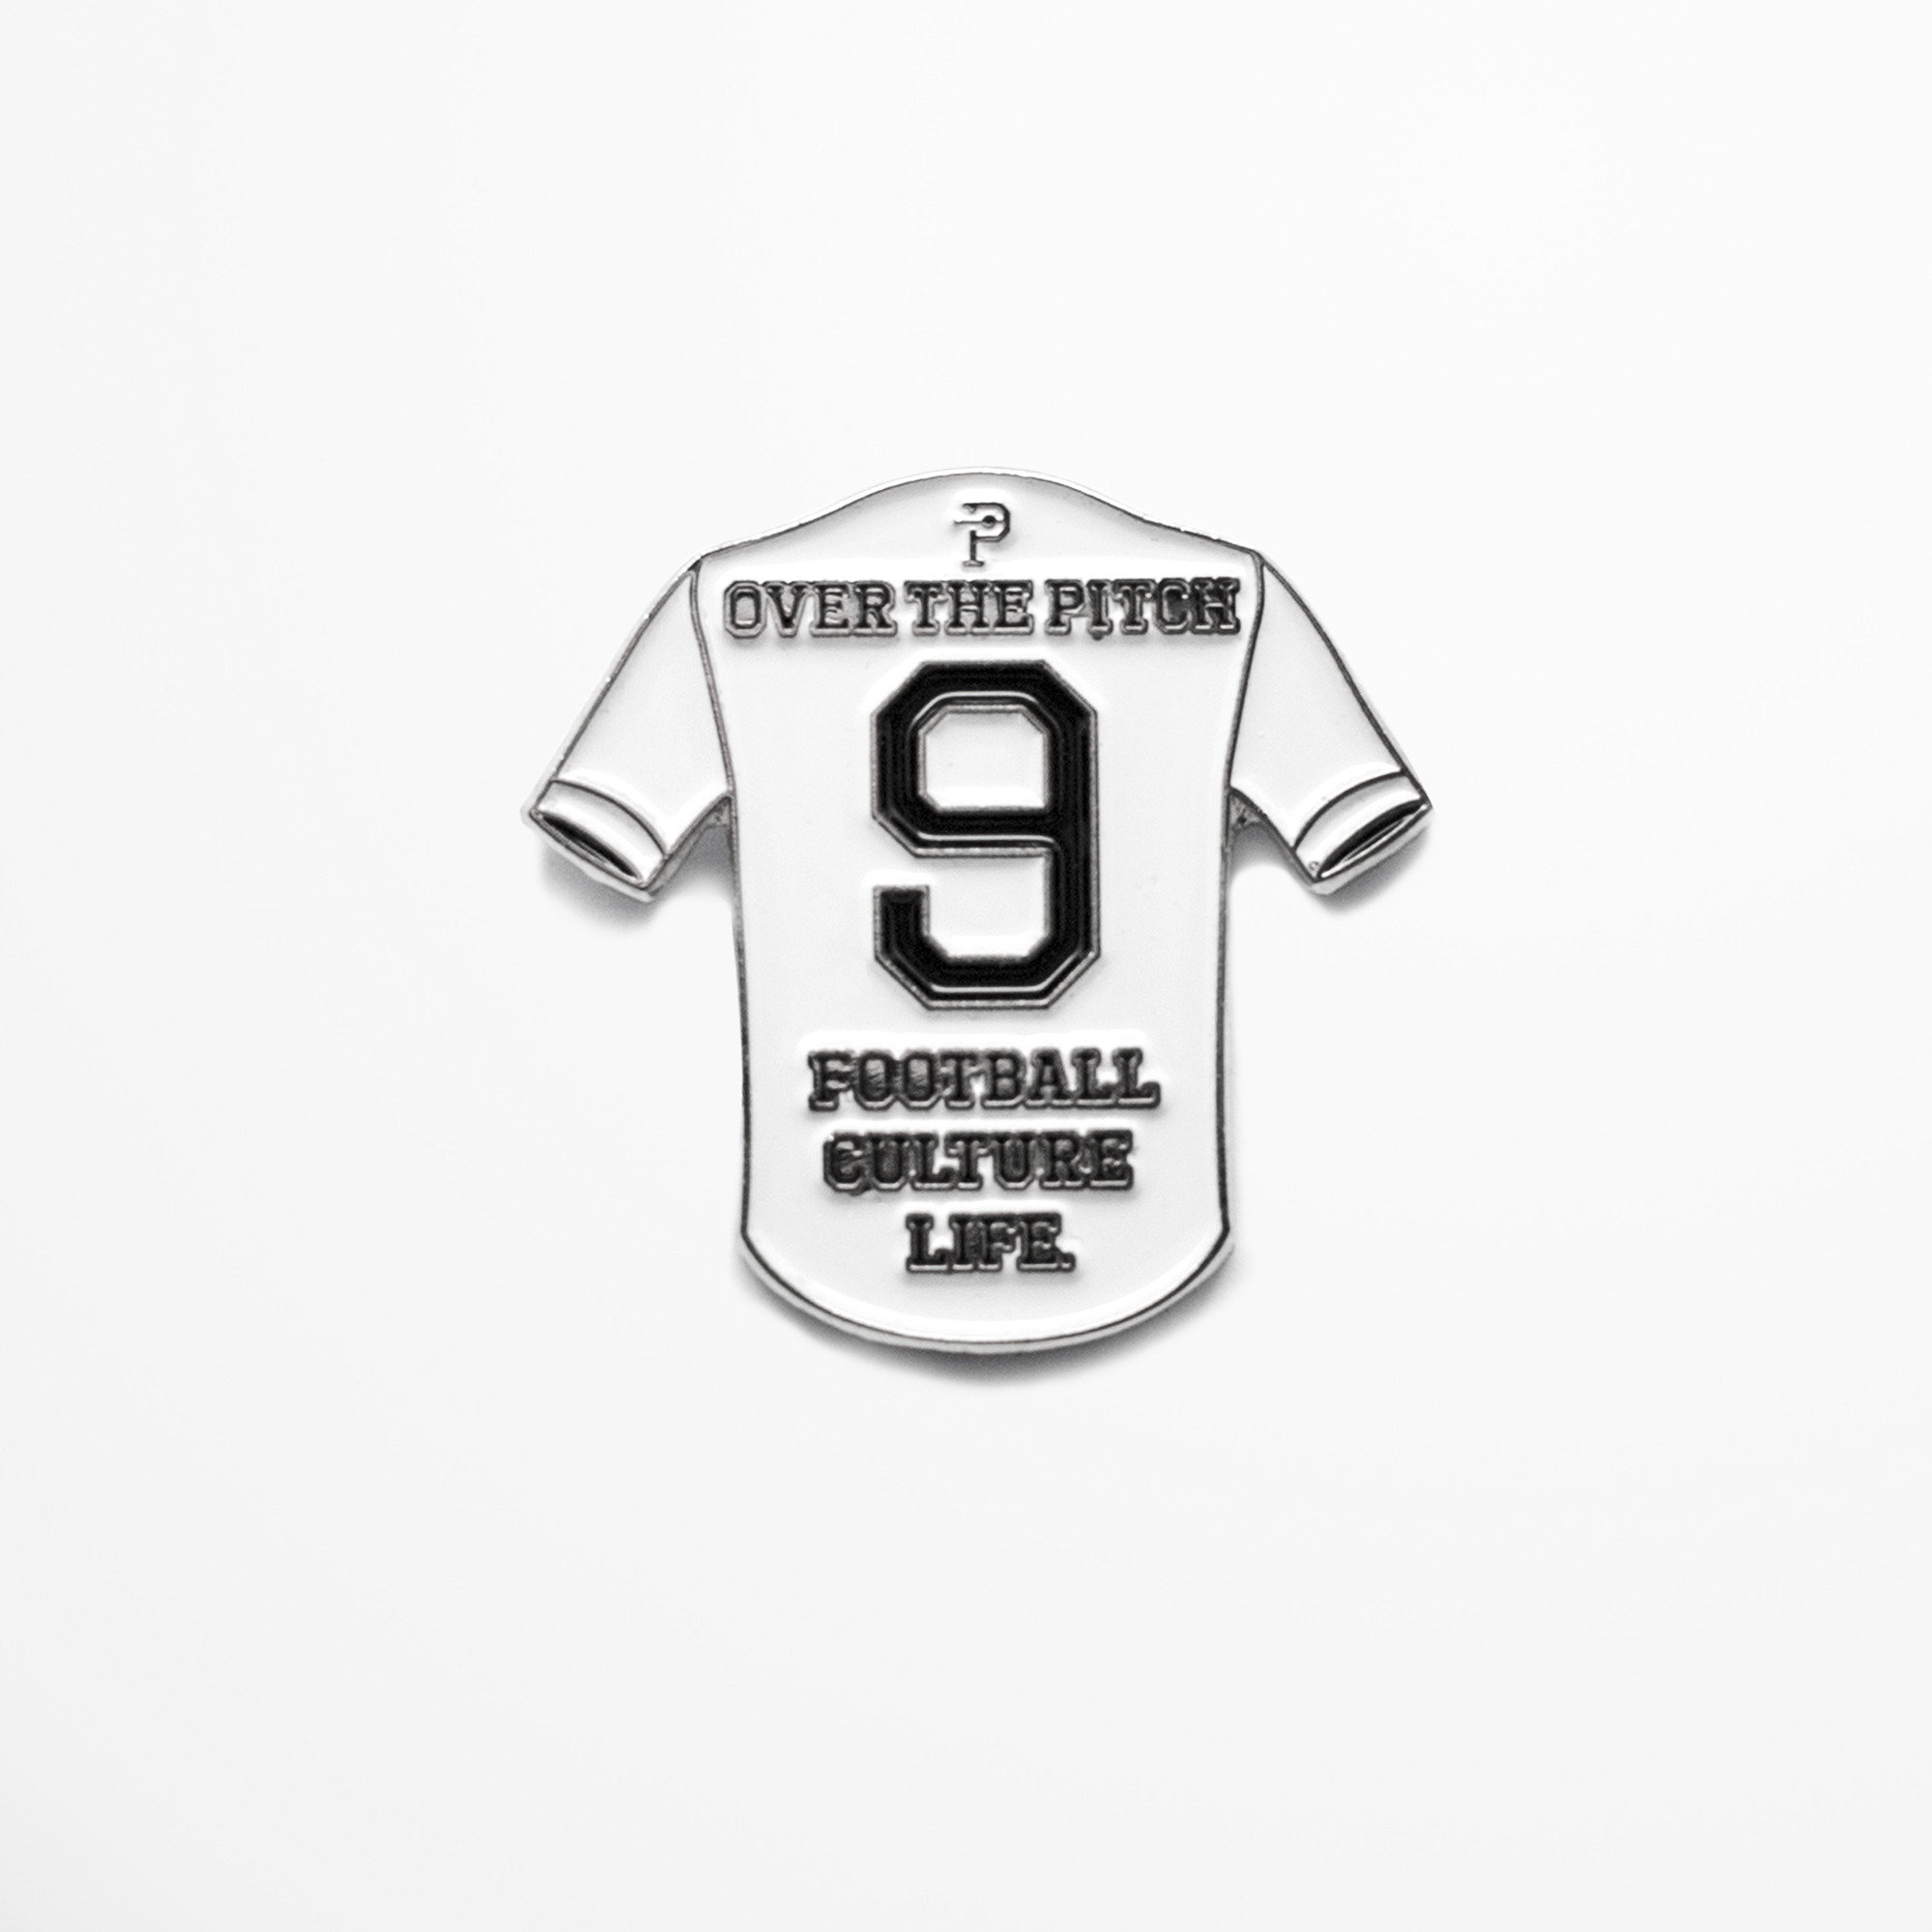 OTP JERSEY PIN BADGE